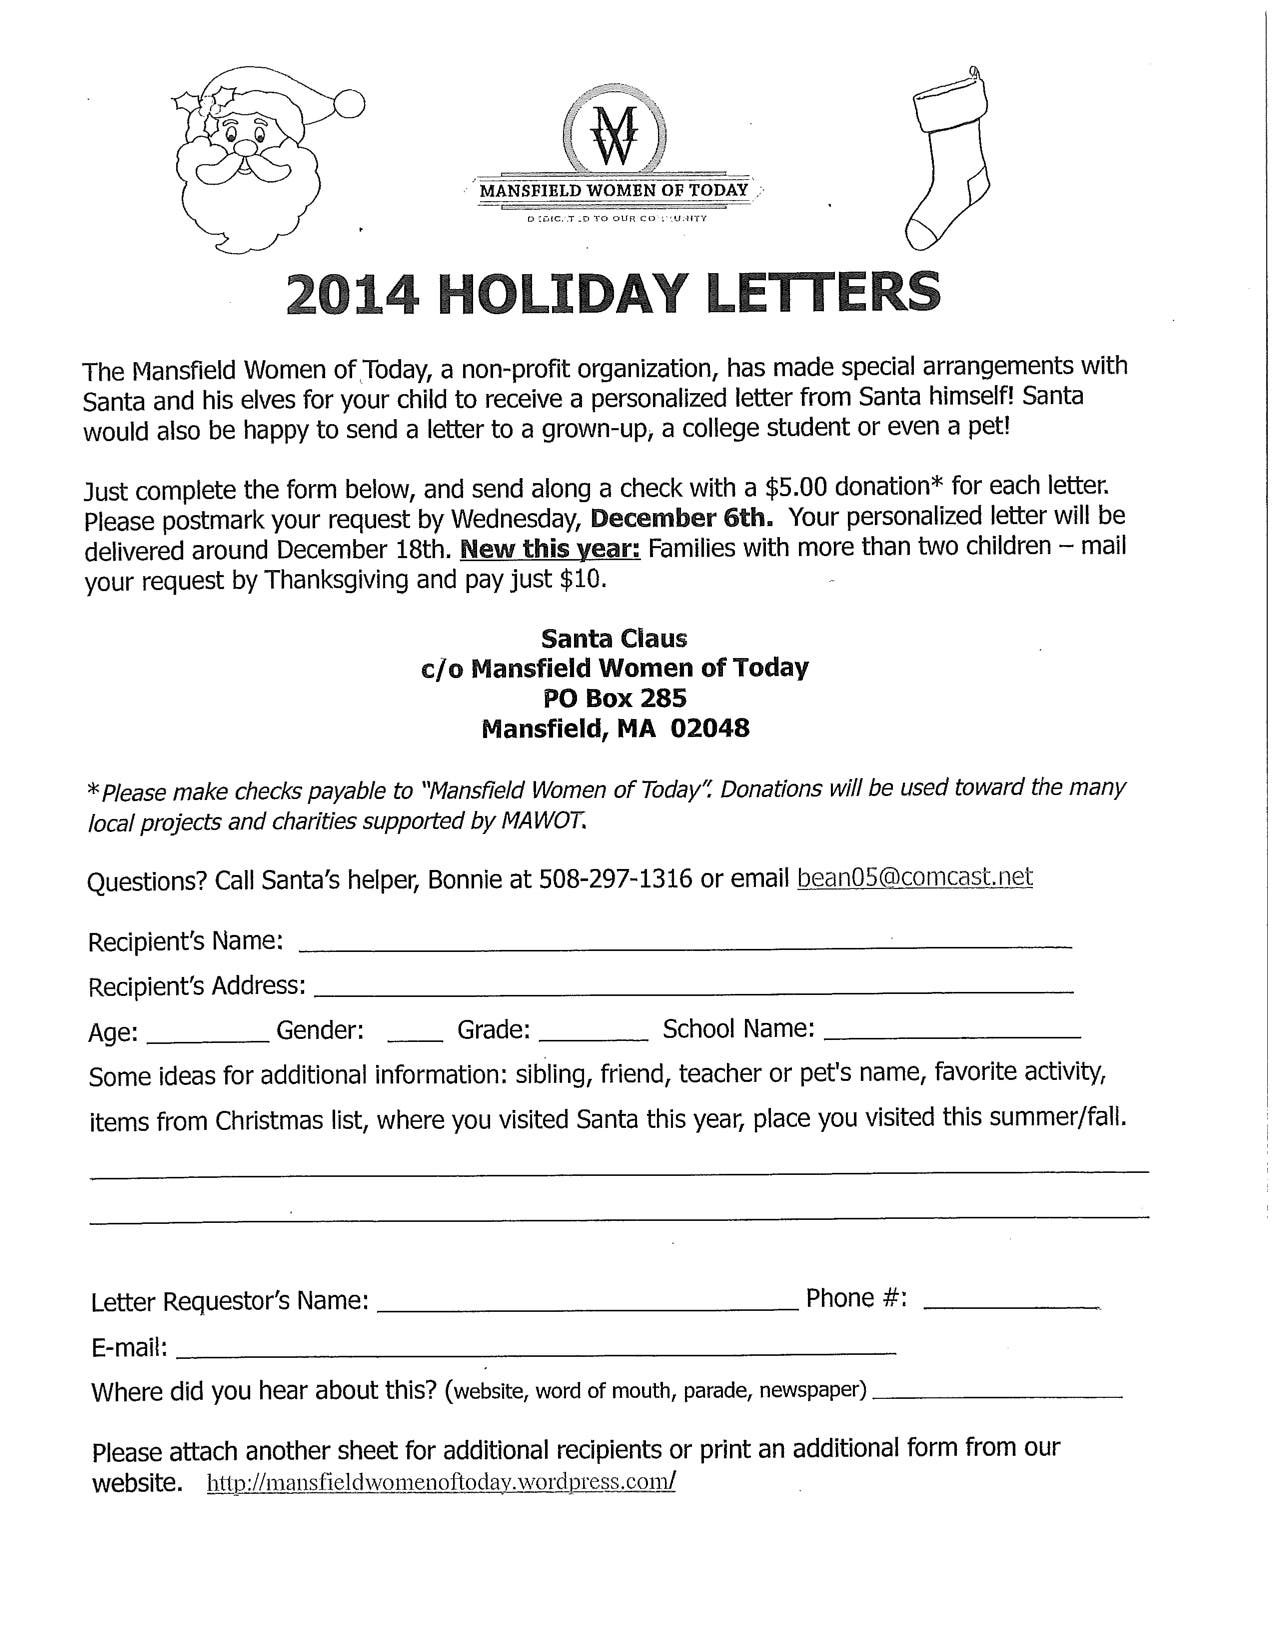 Christmas Holiday Request Letter.Mansfield Women Of Today Offering Letters From Santa